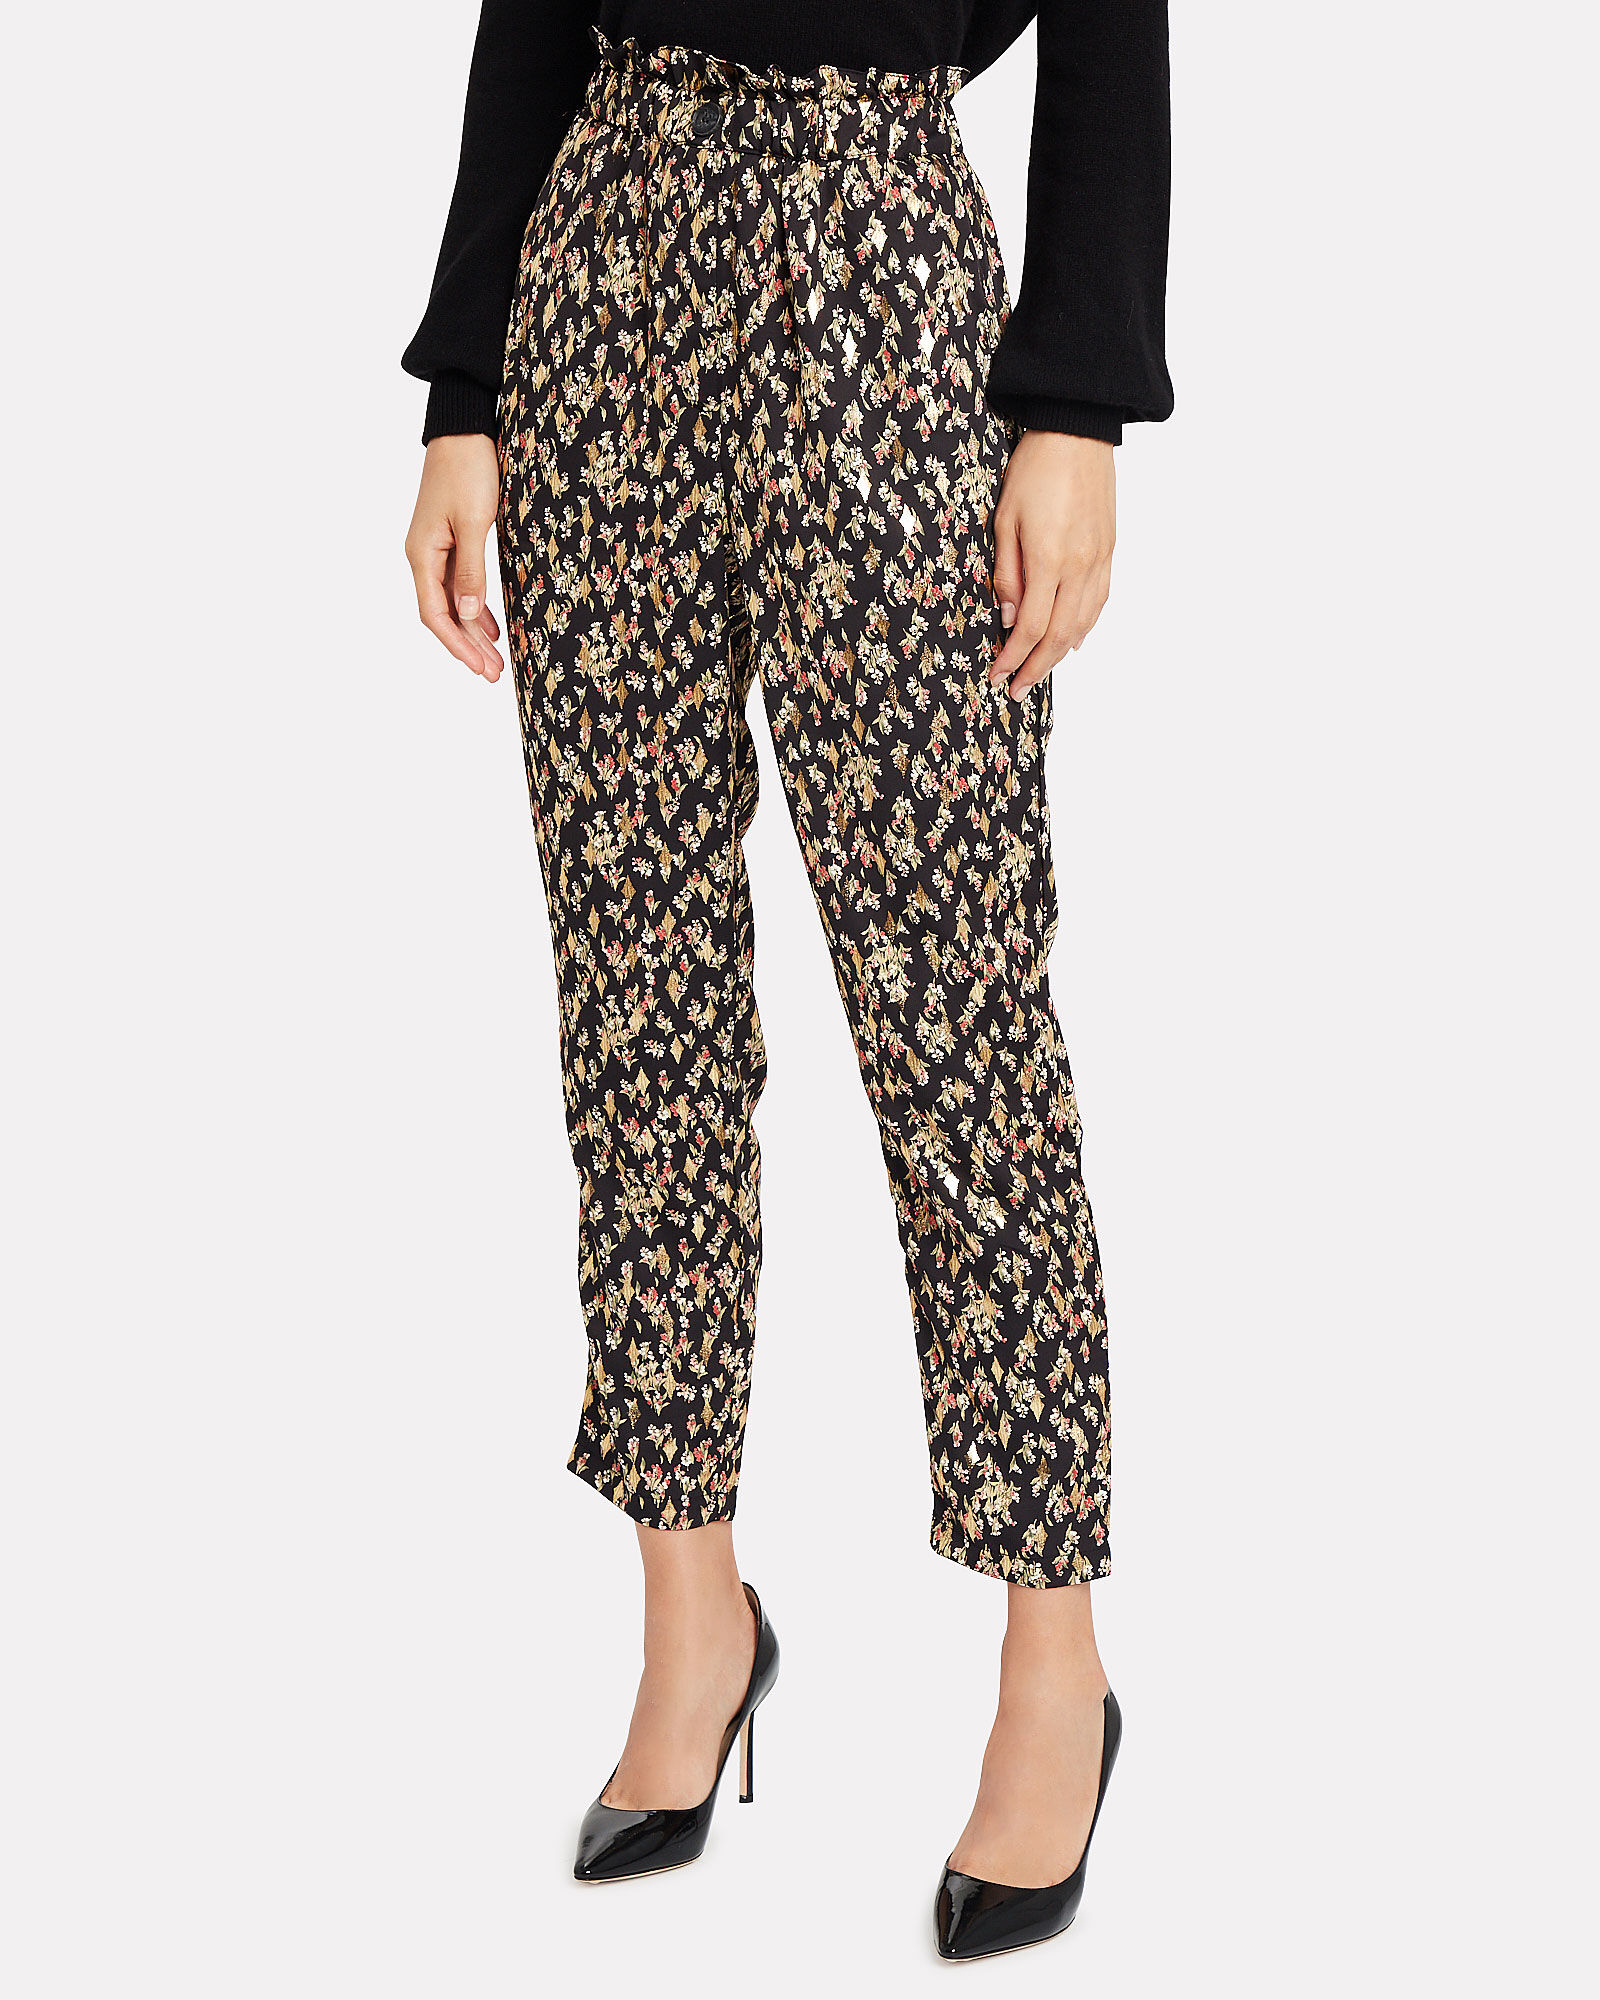 Clover Pleated Floral Pants, BLACK, hi-res